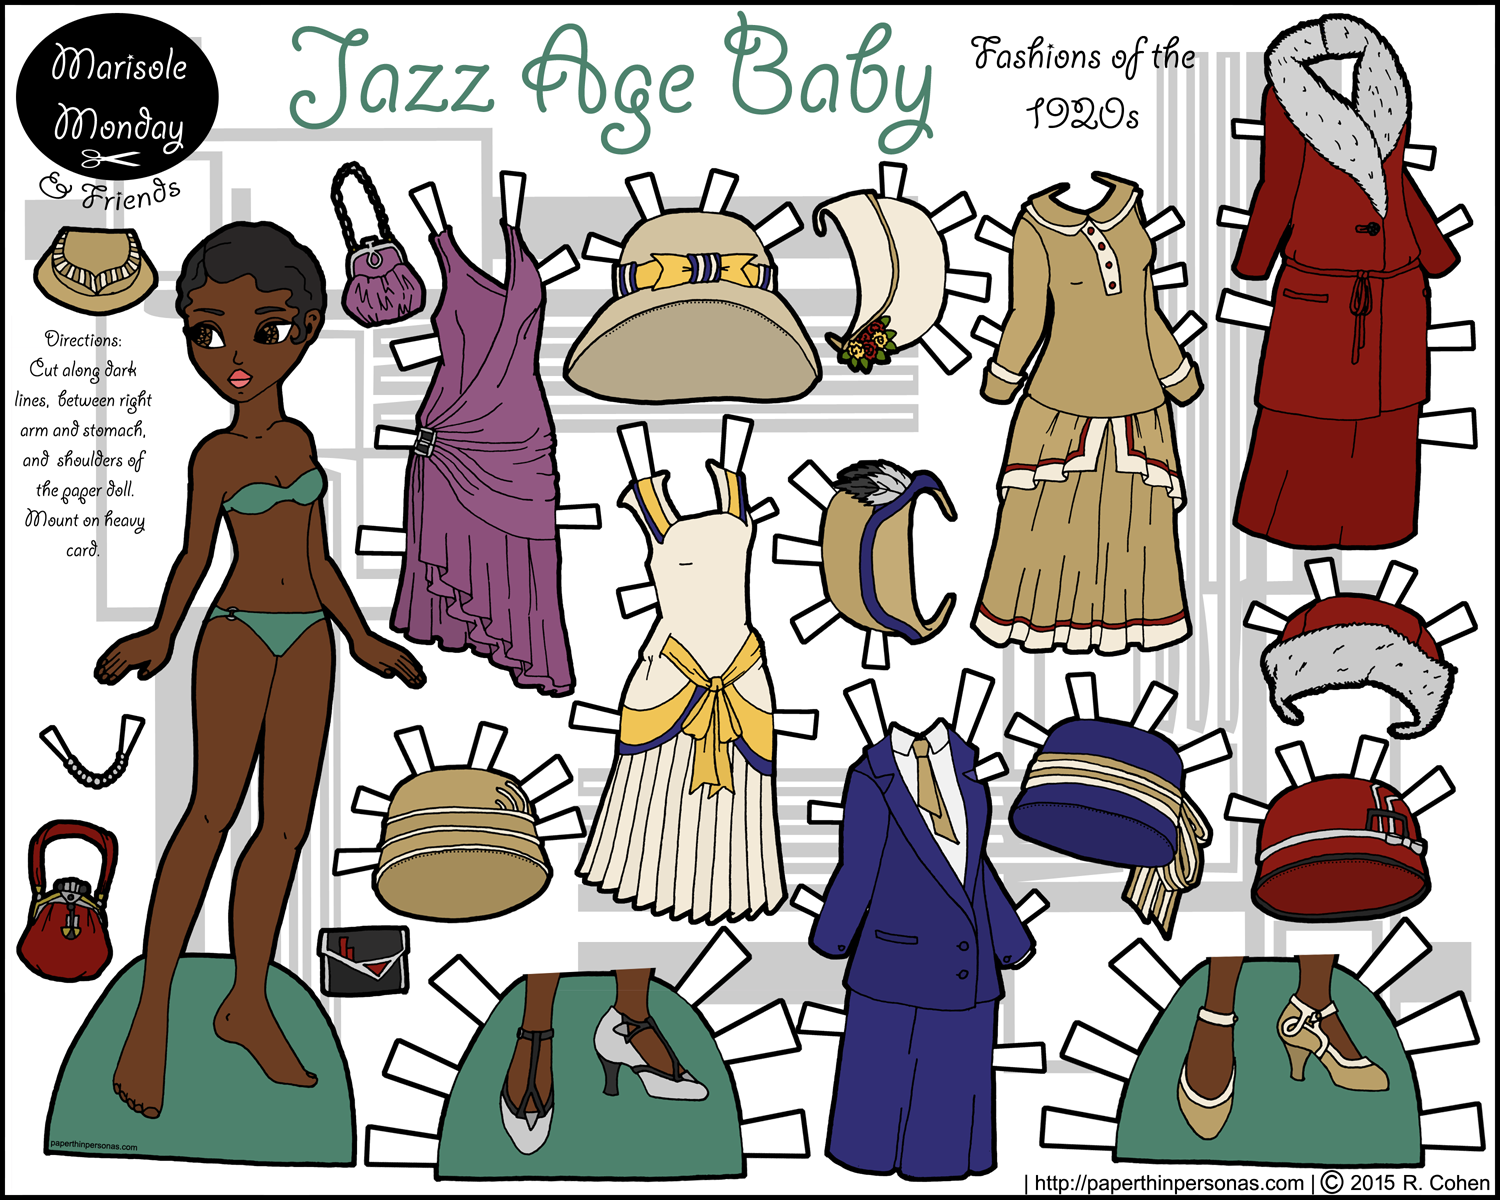 A historical black paper doll with 1920s fashions in color- free to print from paperthinpersonas.com.